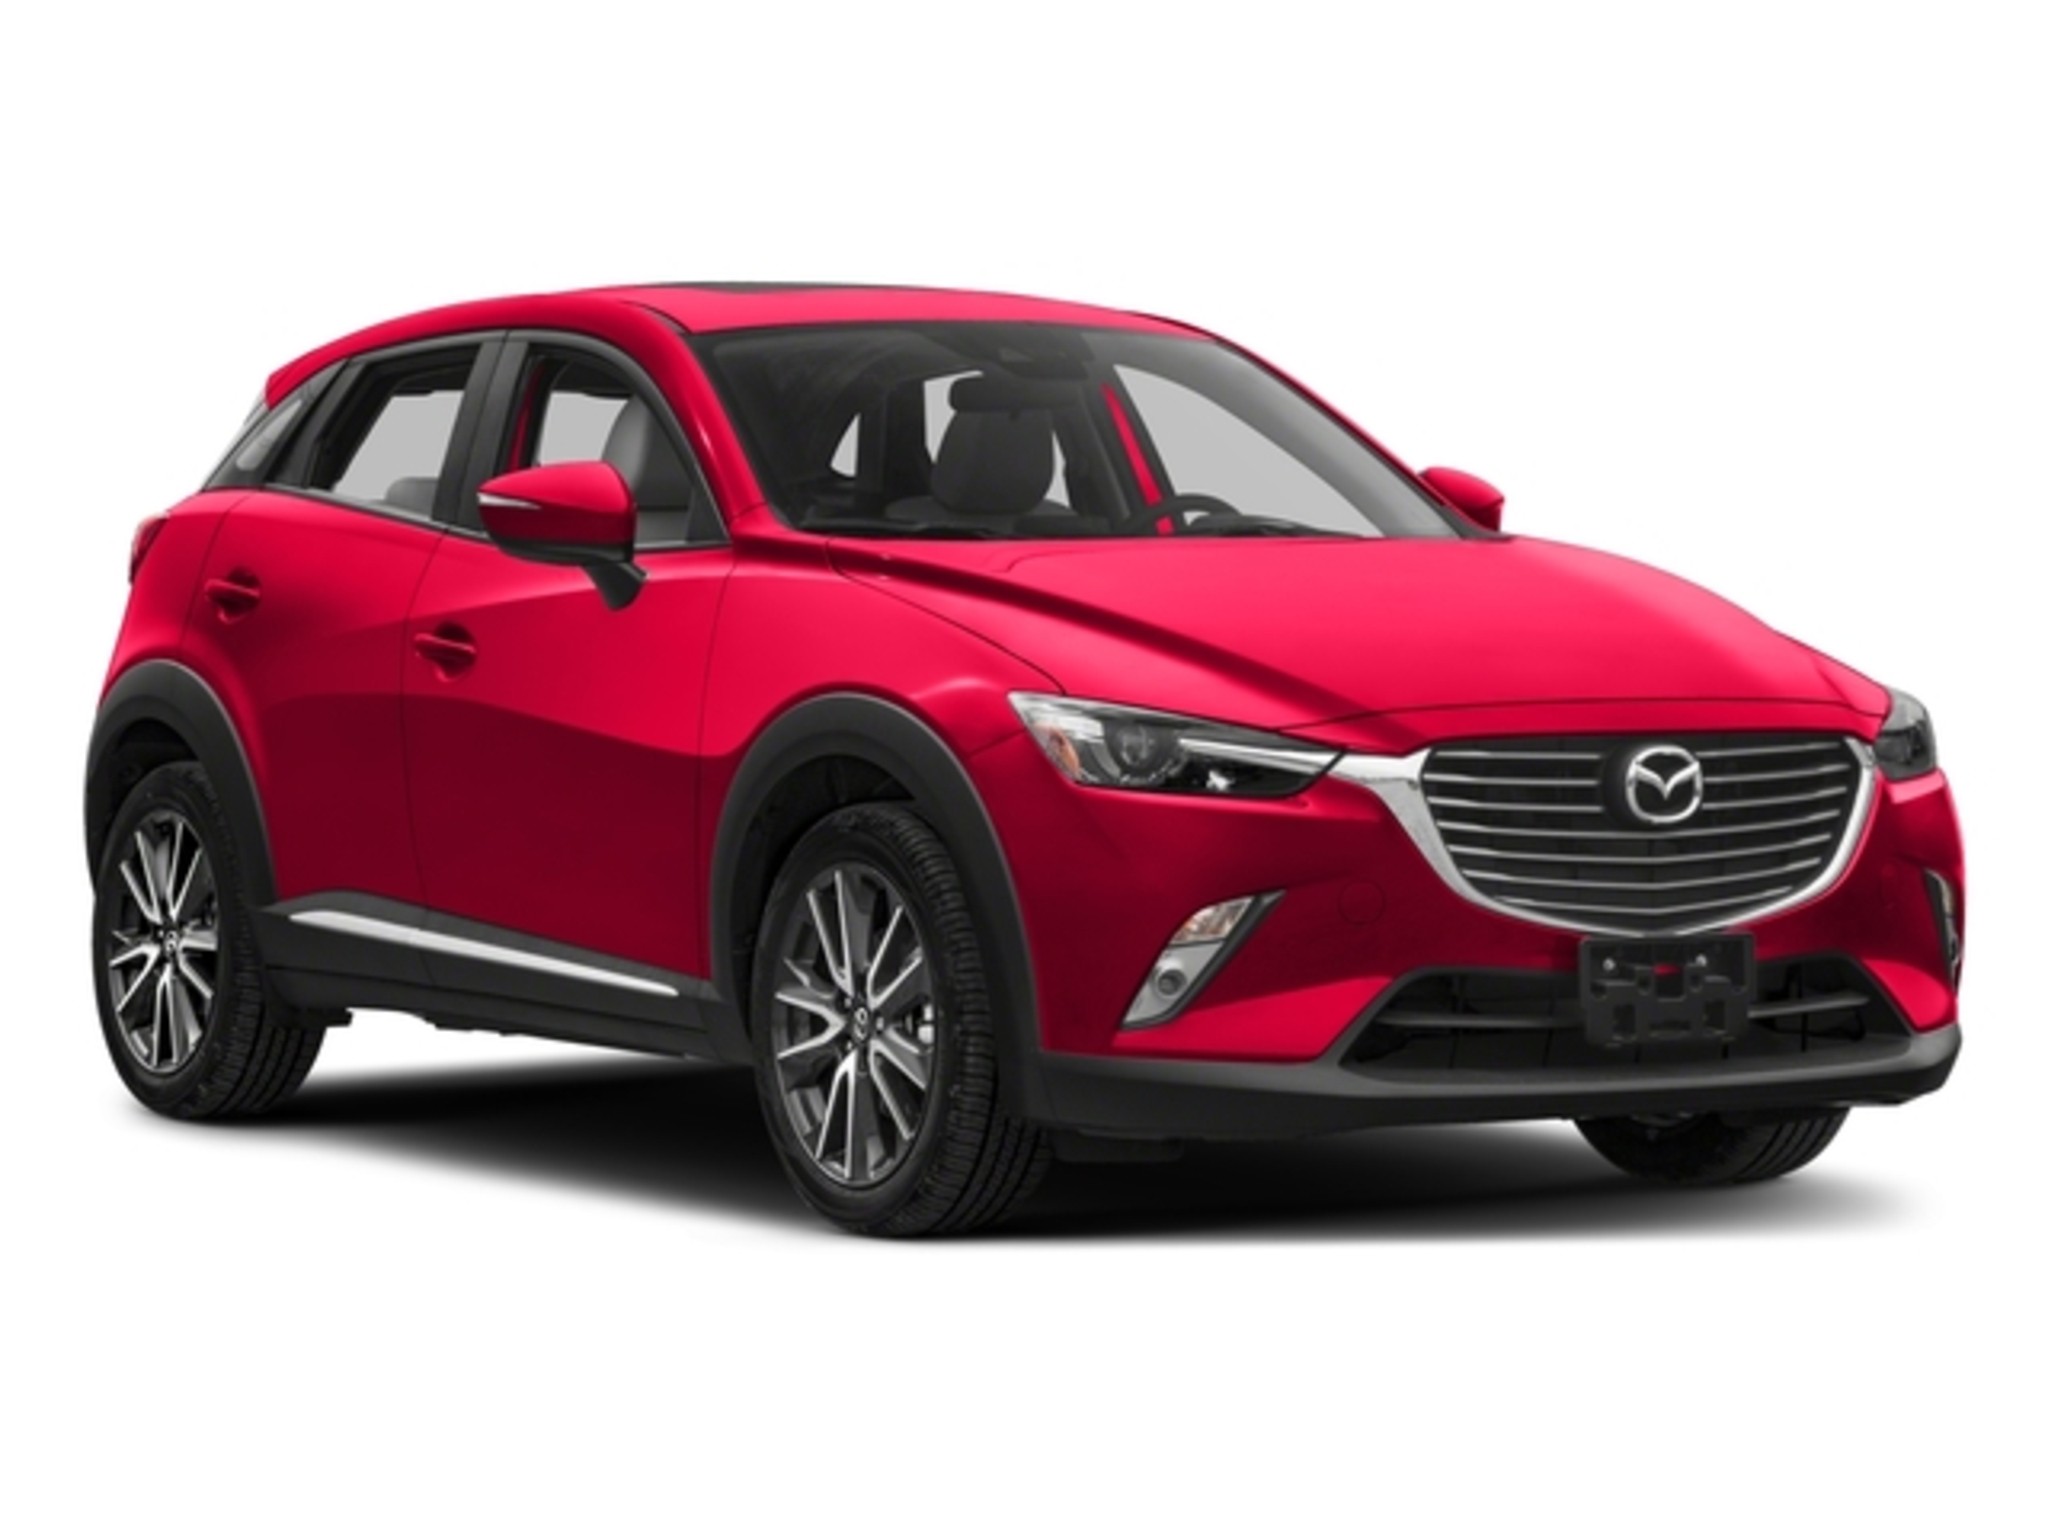 2018 Mazda Cx 3 Compare Prices Trims Options Specs